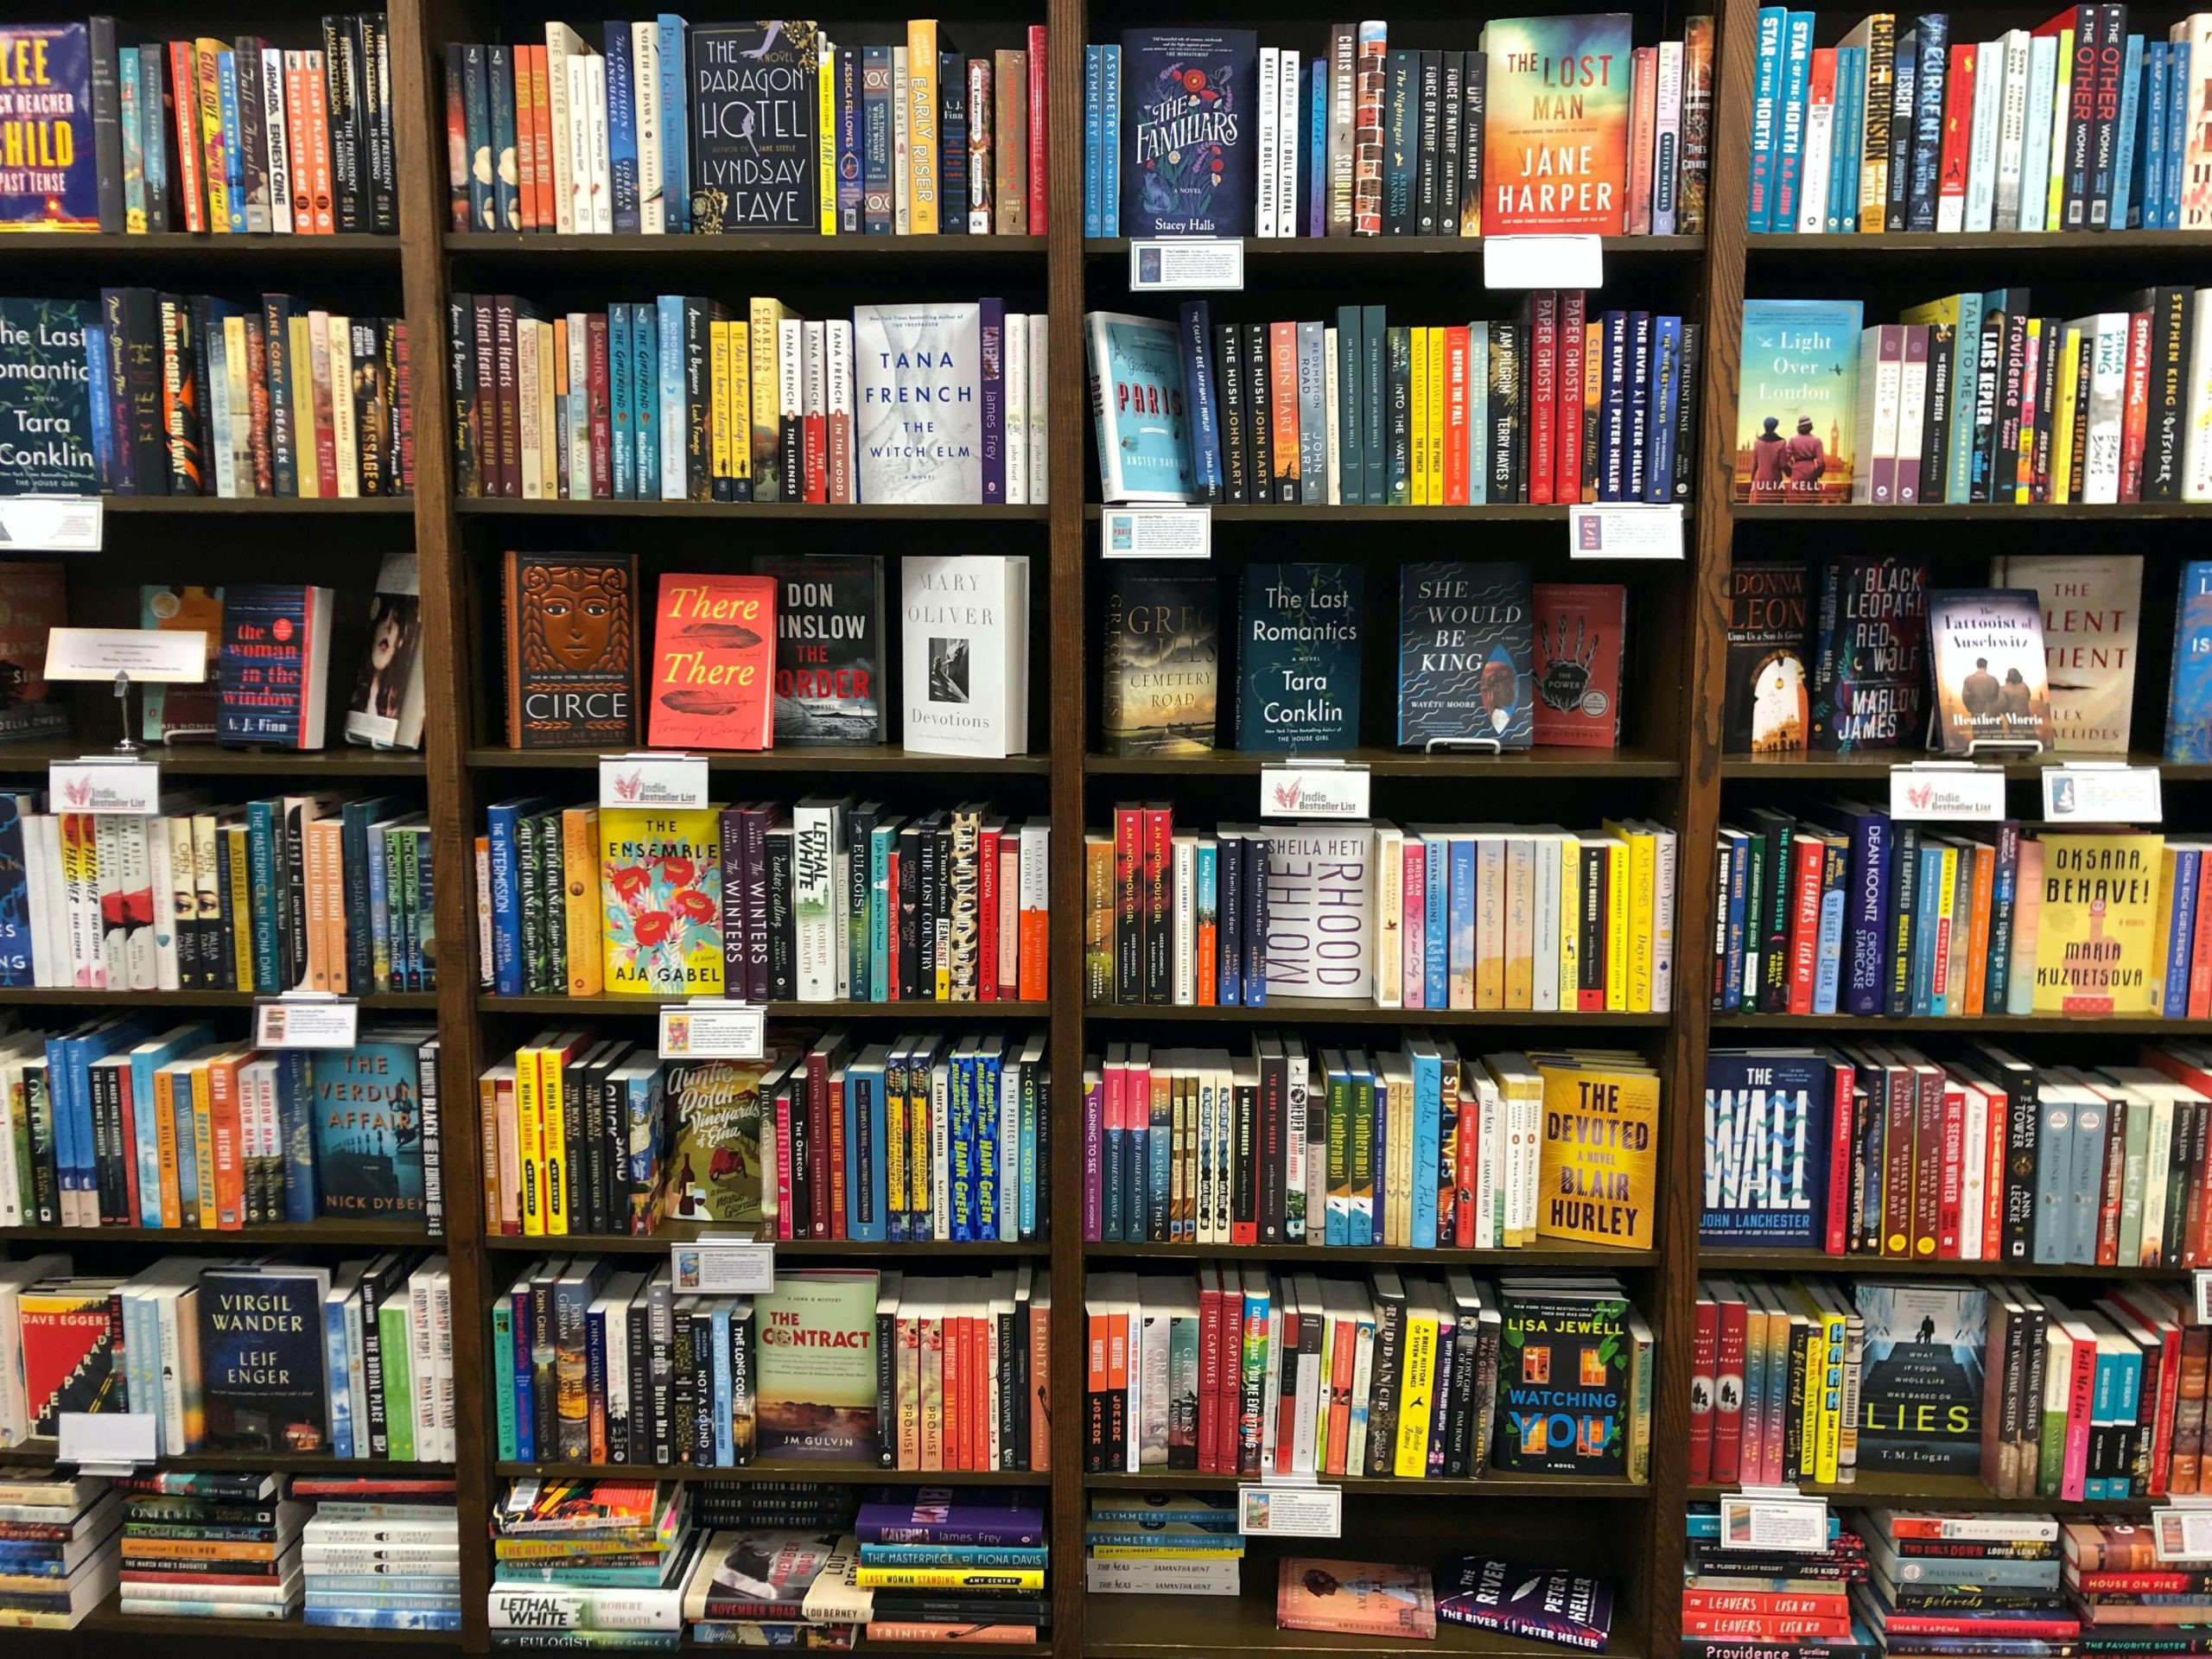 Bookstore bookcase filled with books.